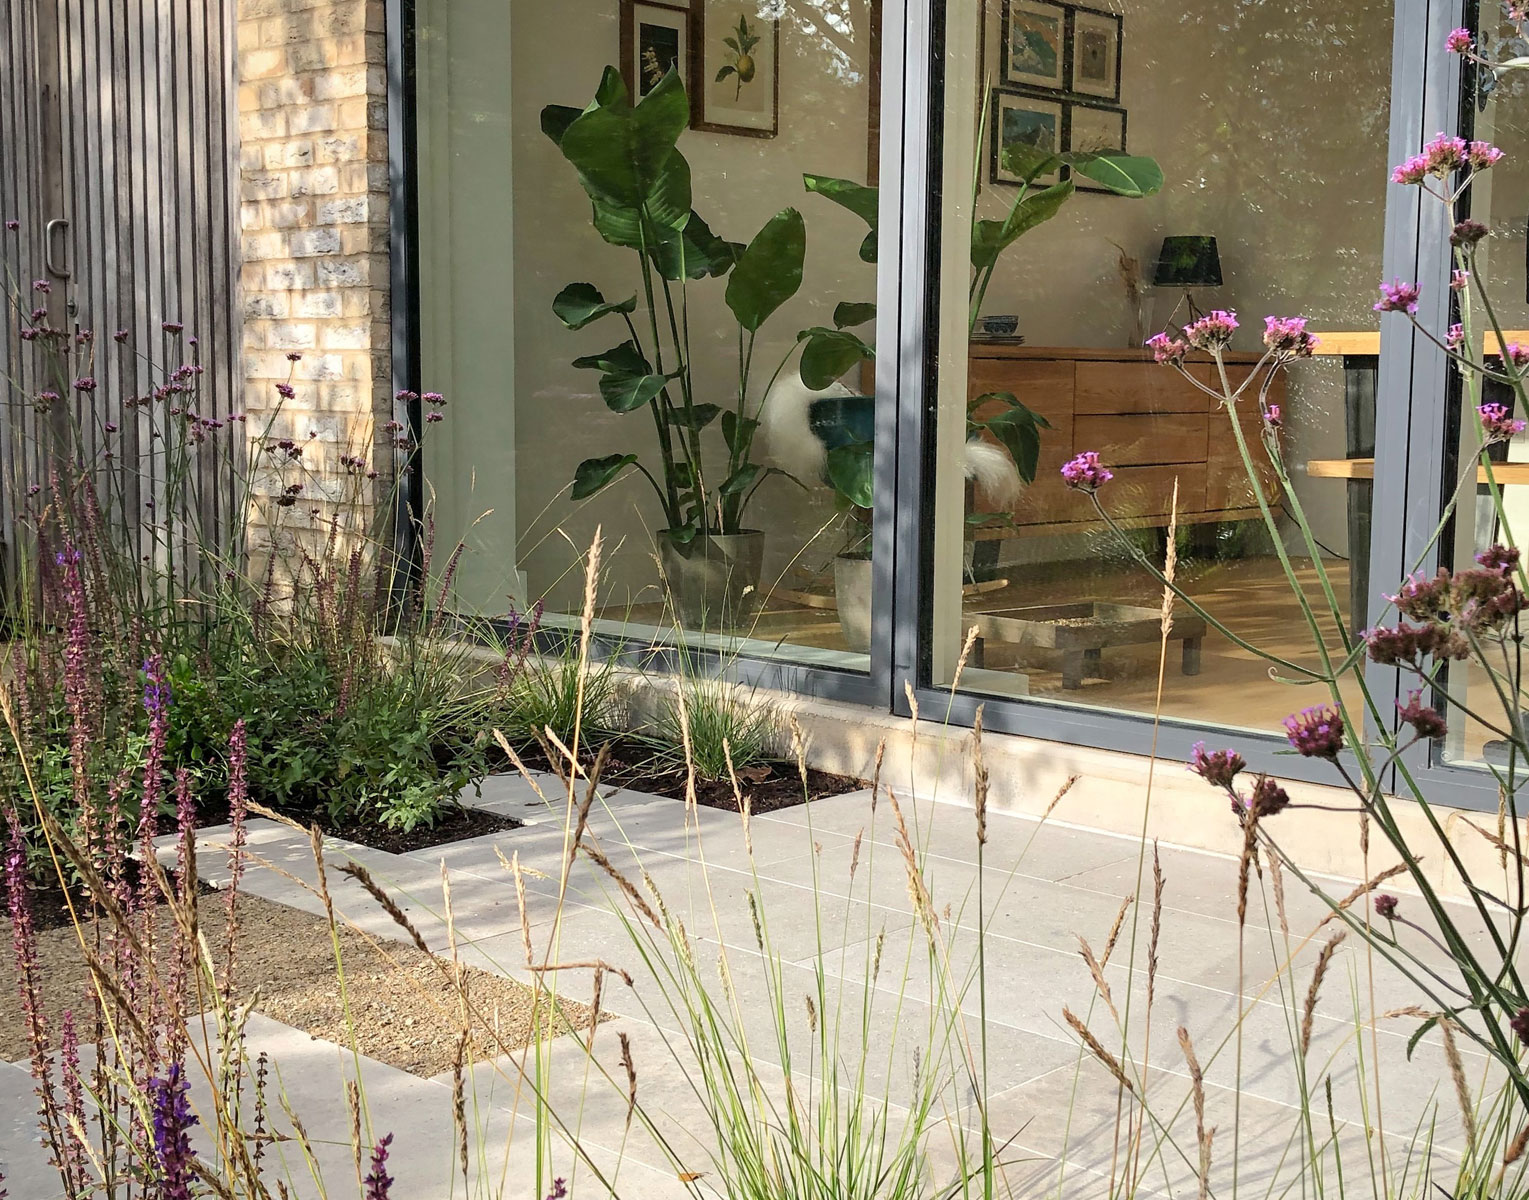 Colm Joseph Gardens - Cambridge garden modern architecture contemporary garden design